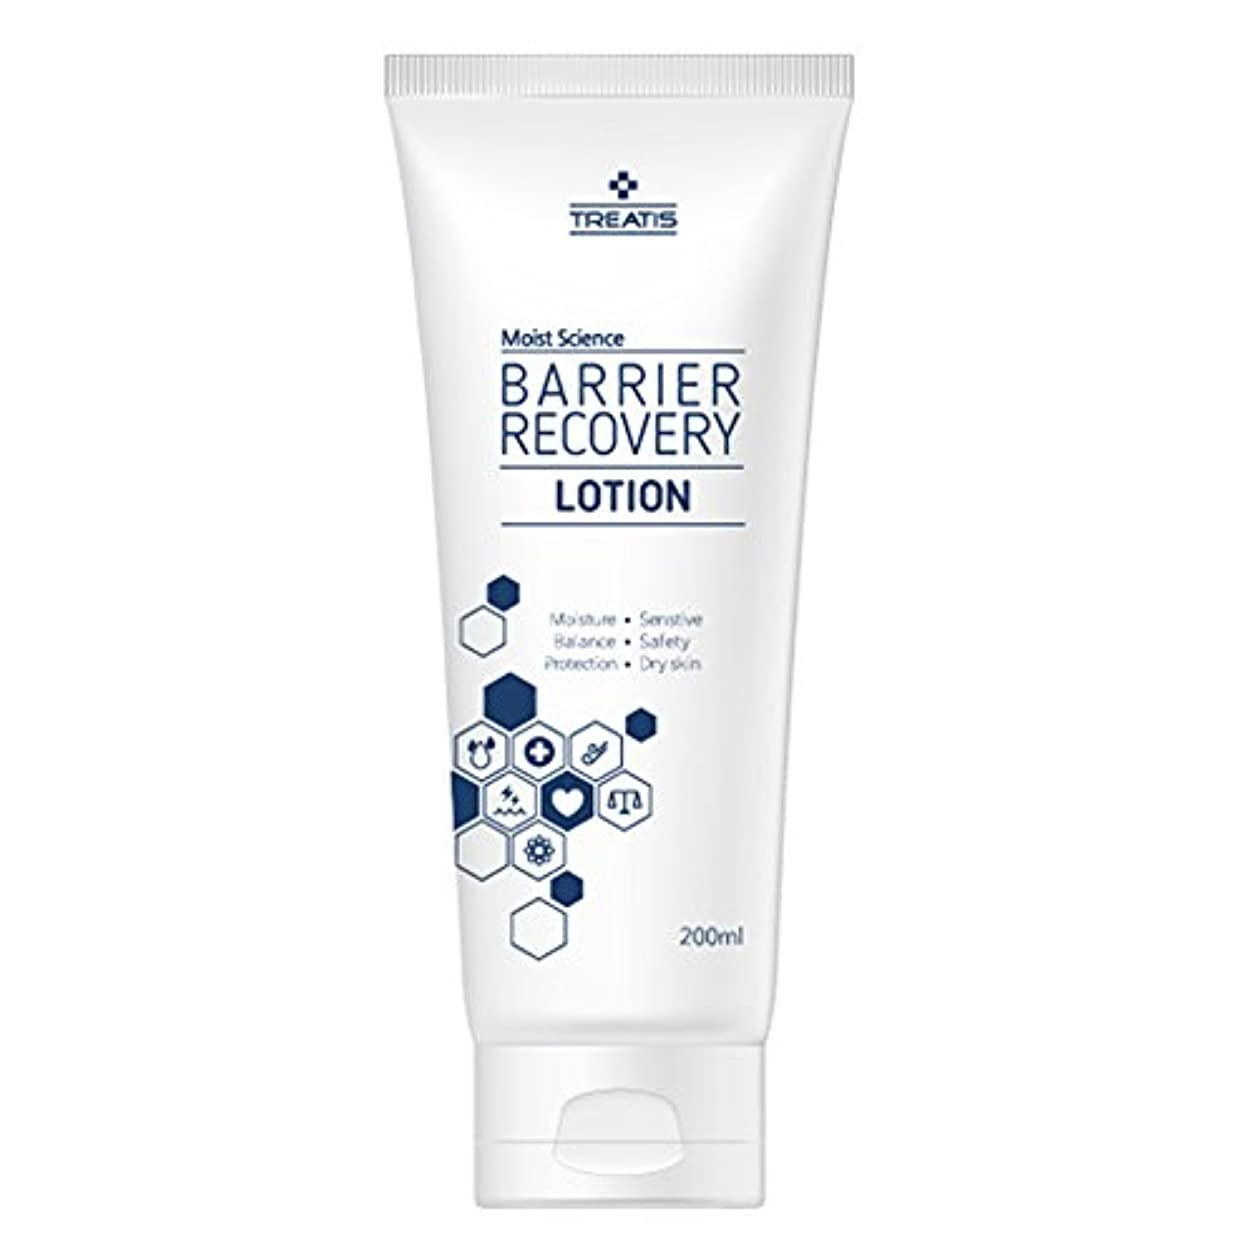 上に縁伝染病Treatis barrier recovery lotion 7oz (200ml)/Moisture, Senstive, Balance, Safty, Protection, Dry skin [並行輸入品]